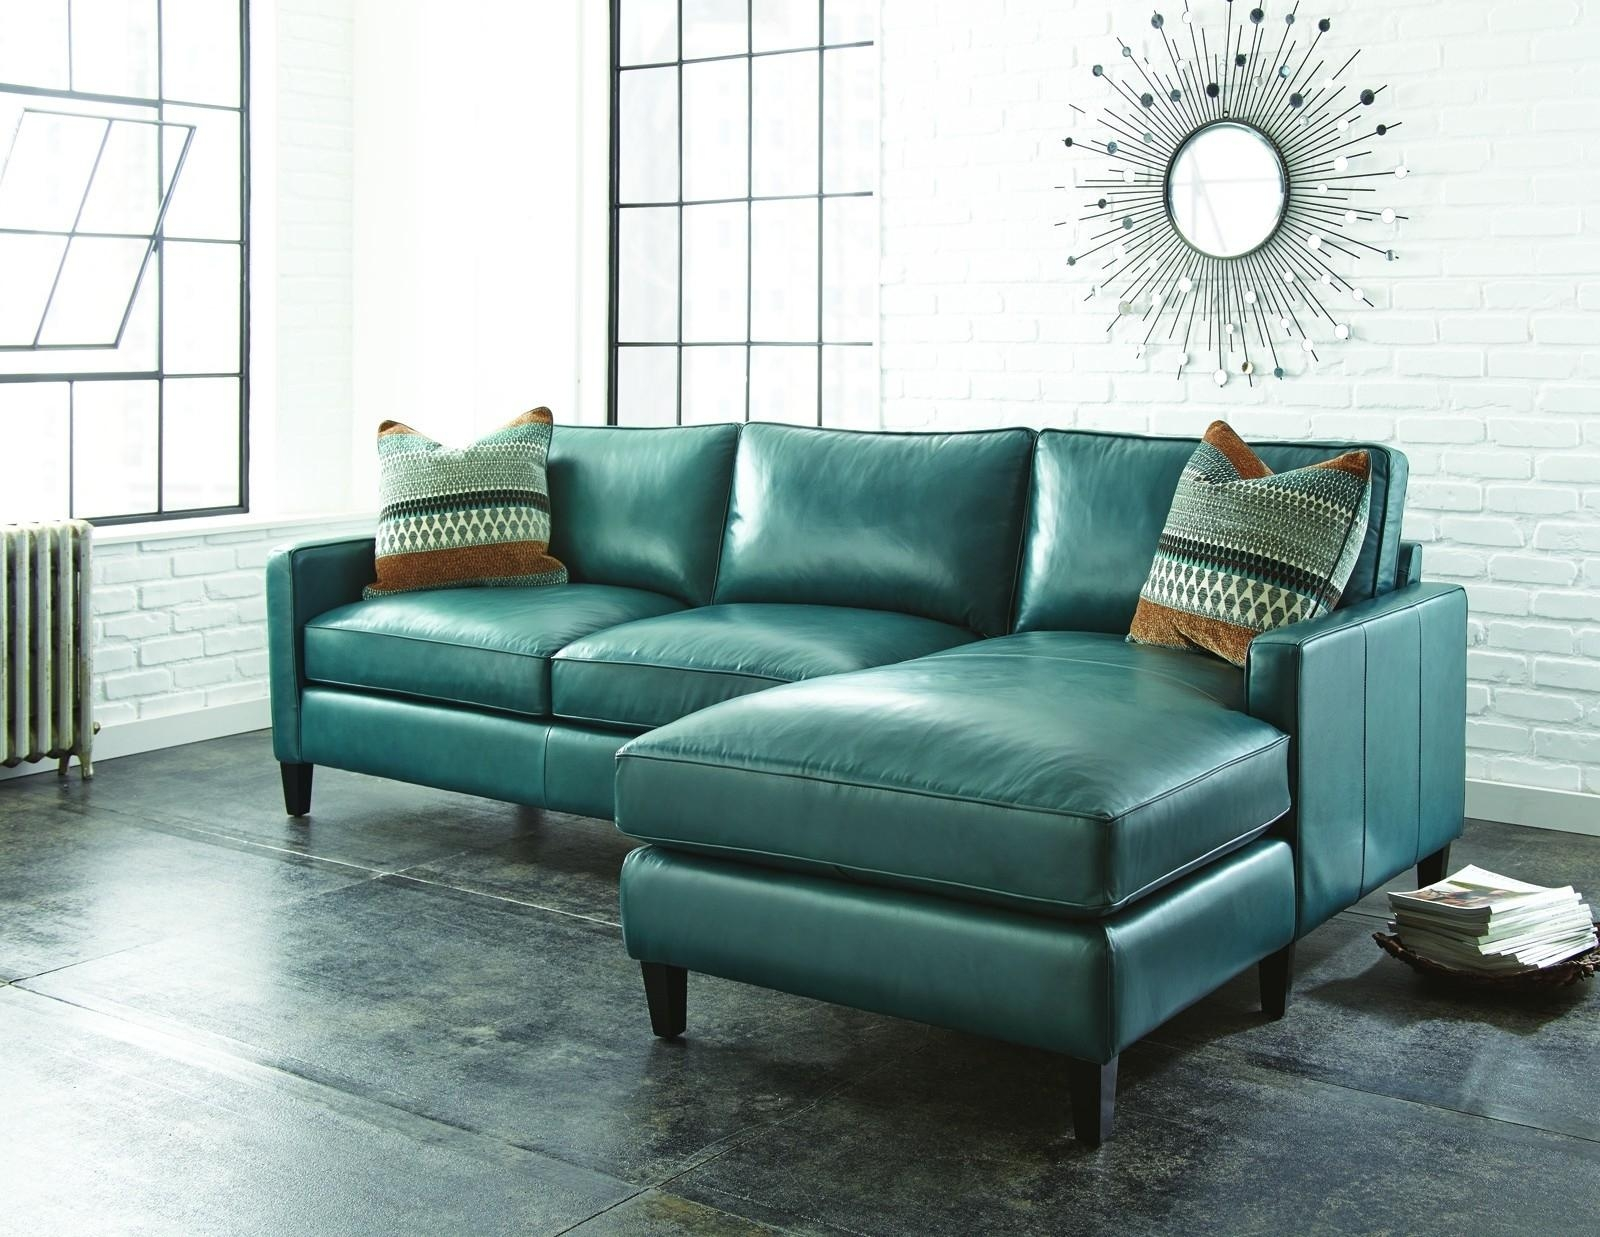 Furniture: Mesmerizing Costco Sectionals Sofa For Cozy Living Room Regarding Sofas And Sectionals (View 4 of 20)